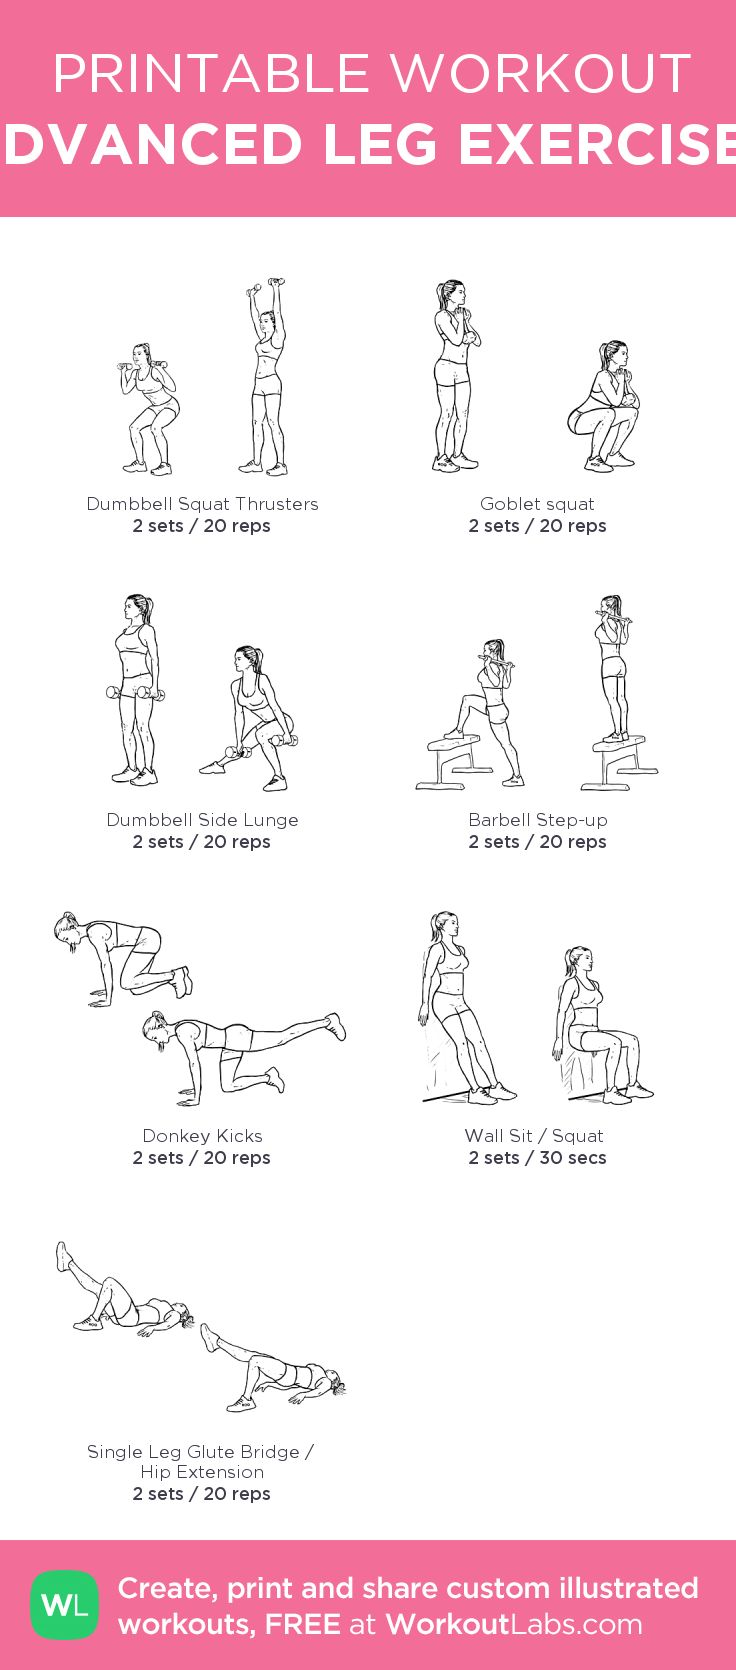 ADVANCED LEG EXERCISES: my custom printable workout by @WorkoutLabs #workoutlabs #customworkout